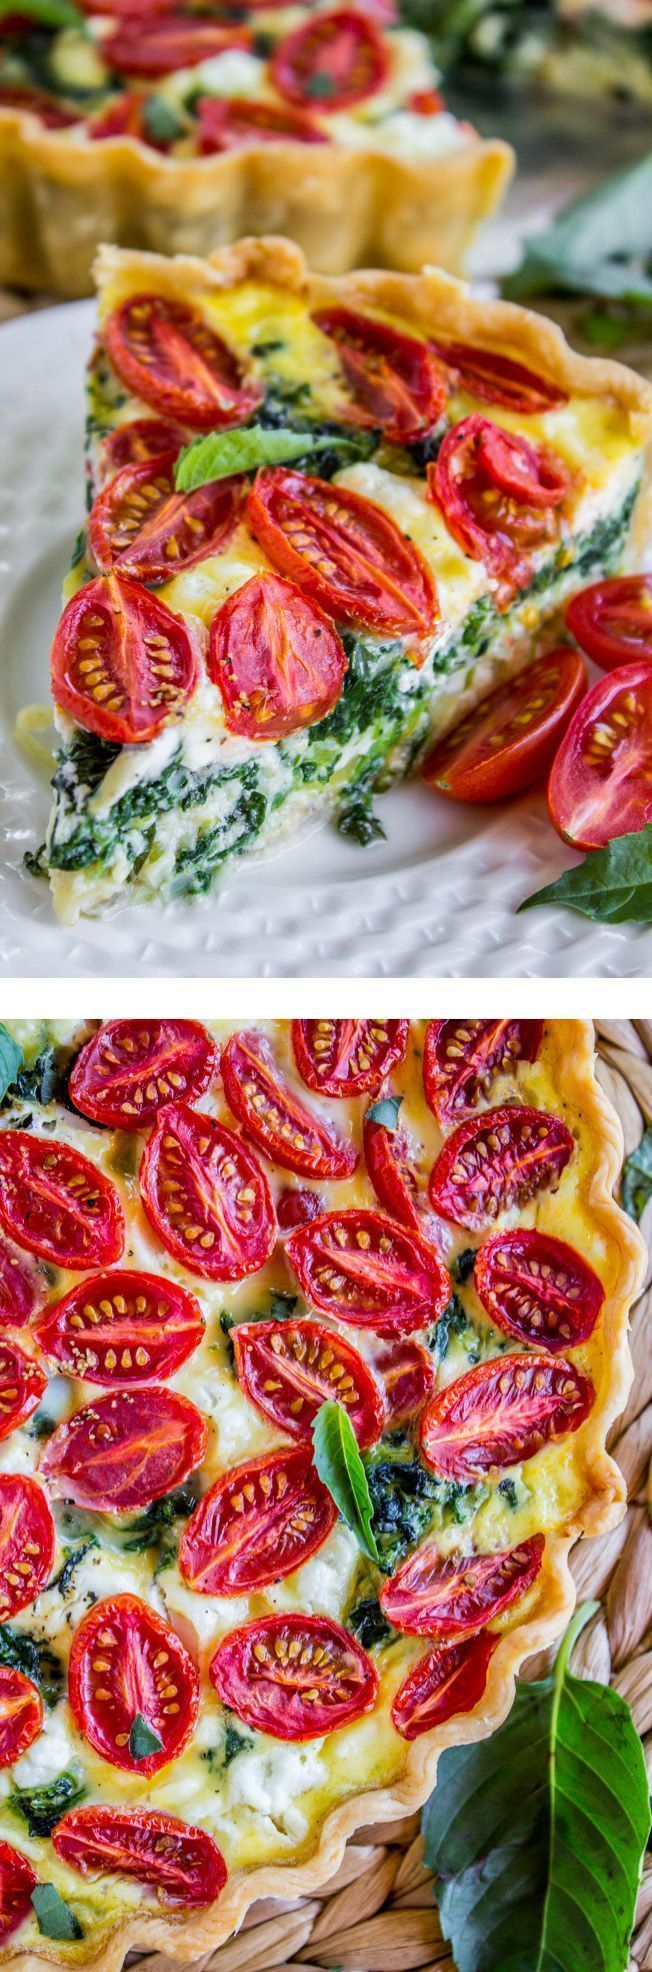 Cherry Tomato, Leek, and Spinach Quiche from The Food Charlatan. Quiche is the perfect for spring! This vegetarian recipe combines cherry tomatoes, leeks, spinach and goat cheese to make a great breakfast brunch or dinner